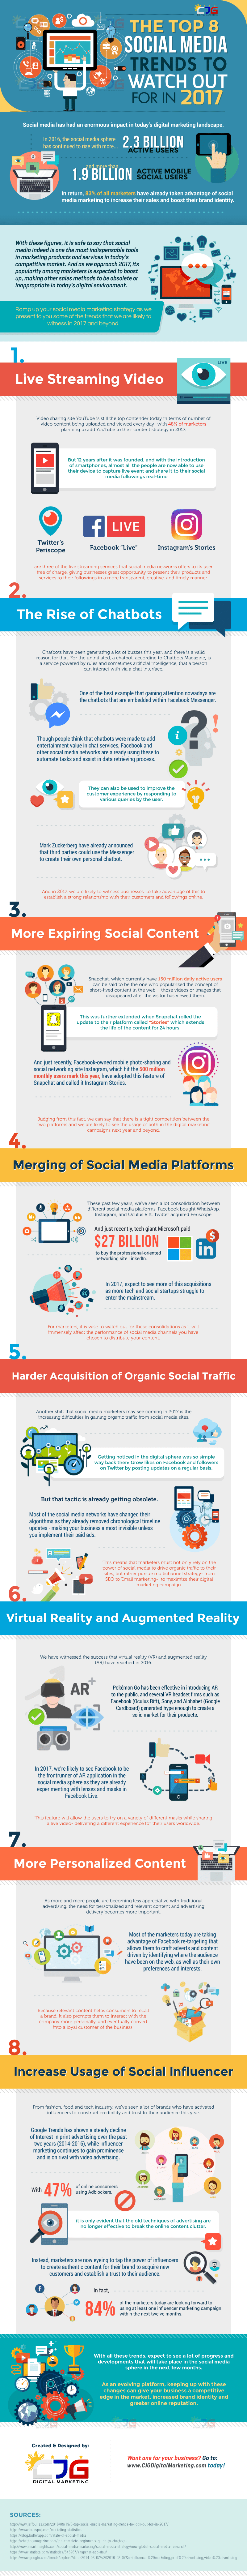 The Top 8 Hottest Social Media Marketing Trends in 2017 (Infographic)